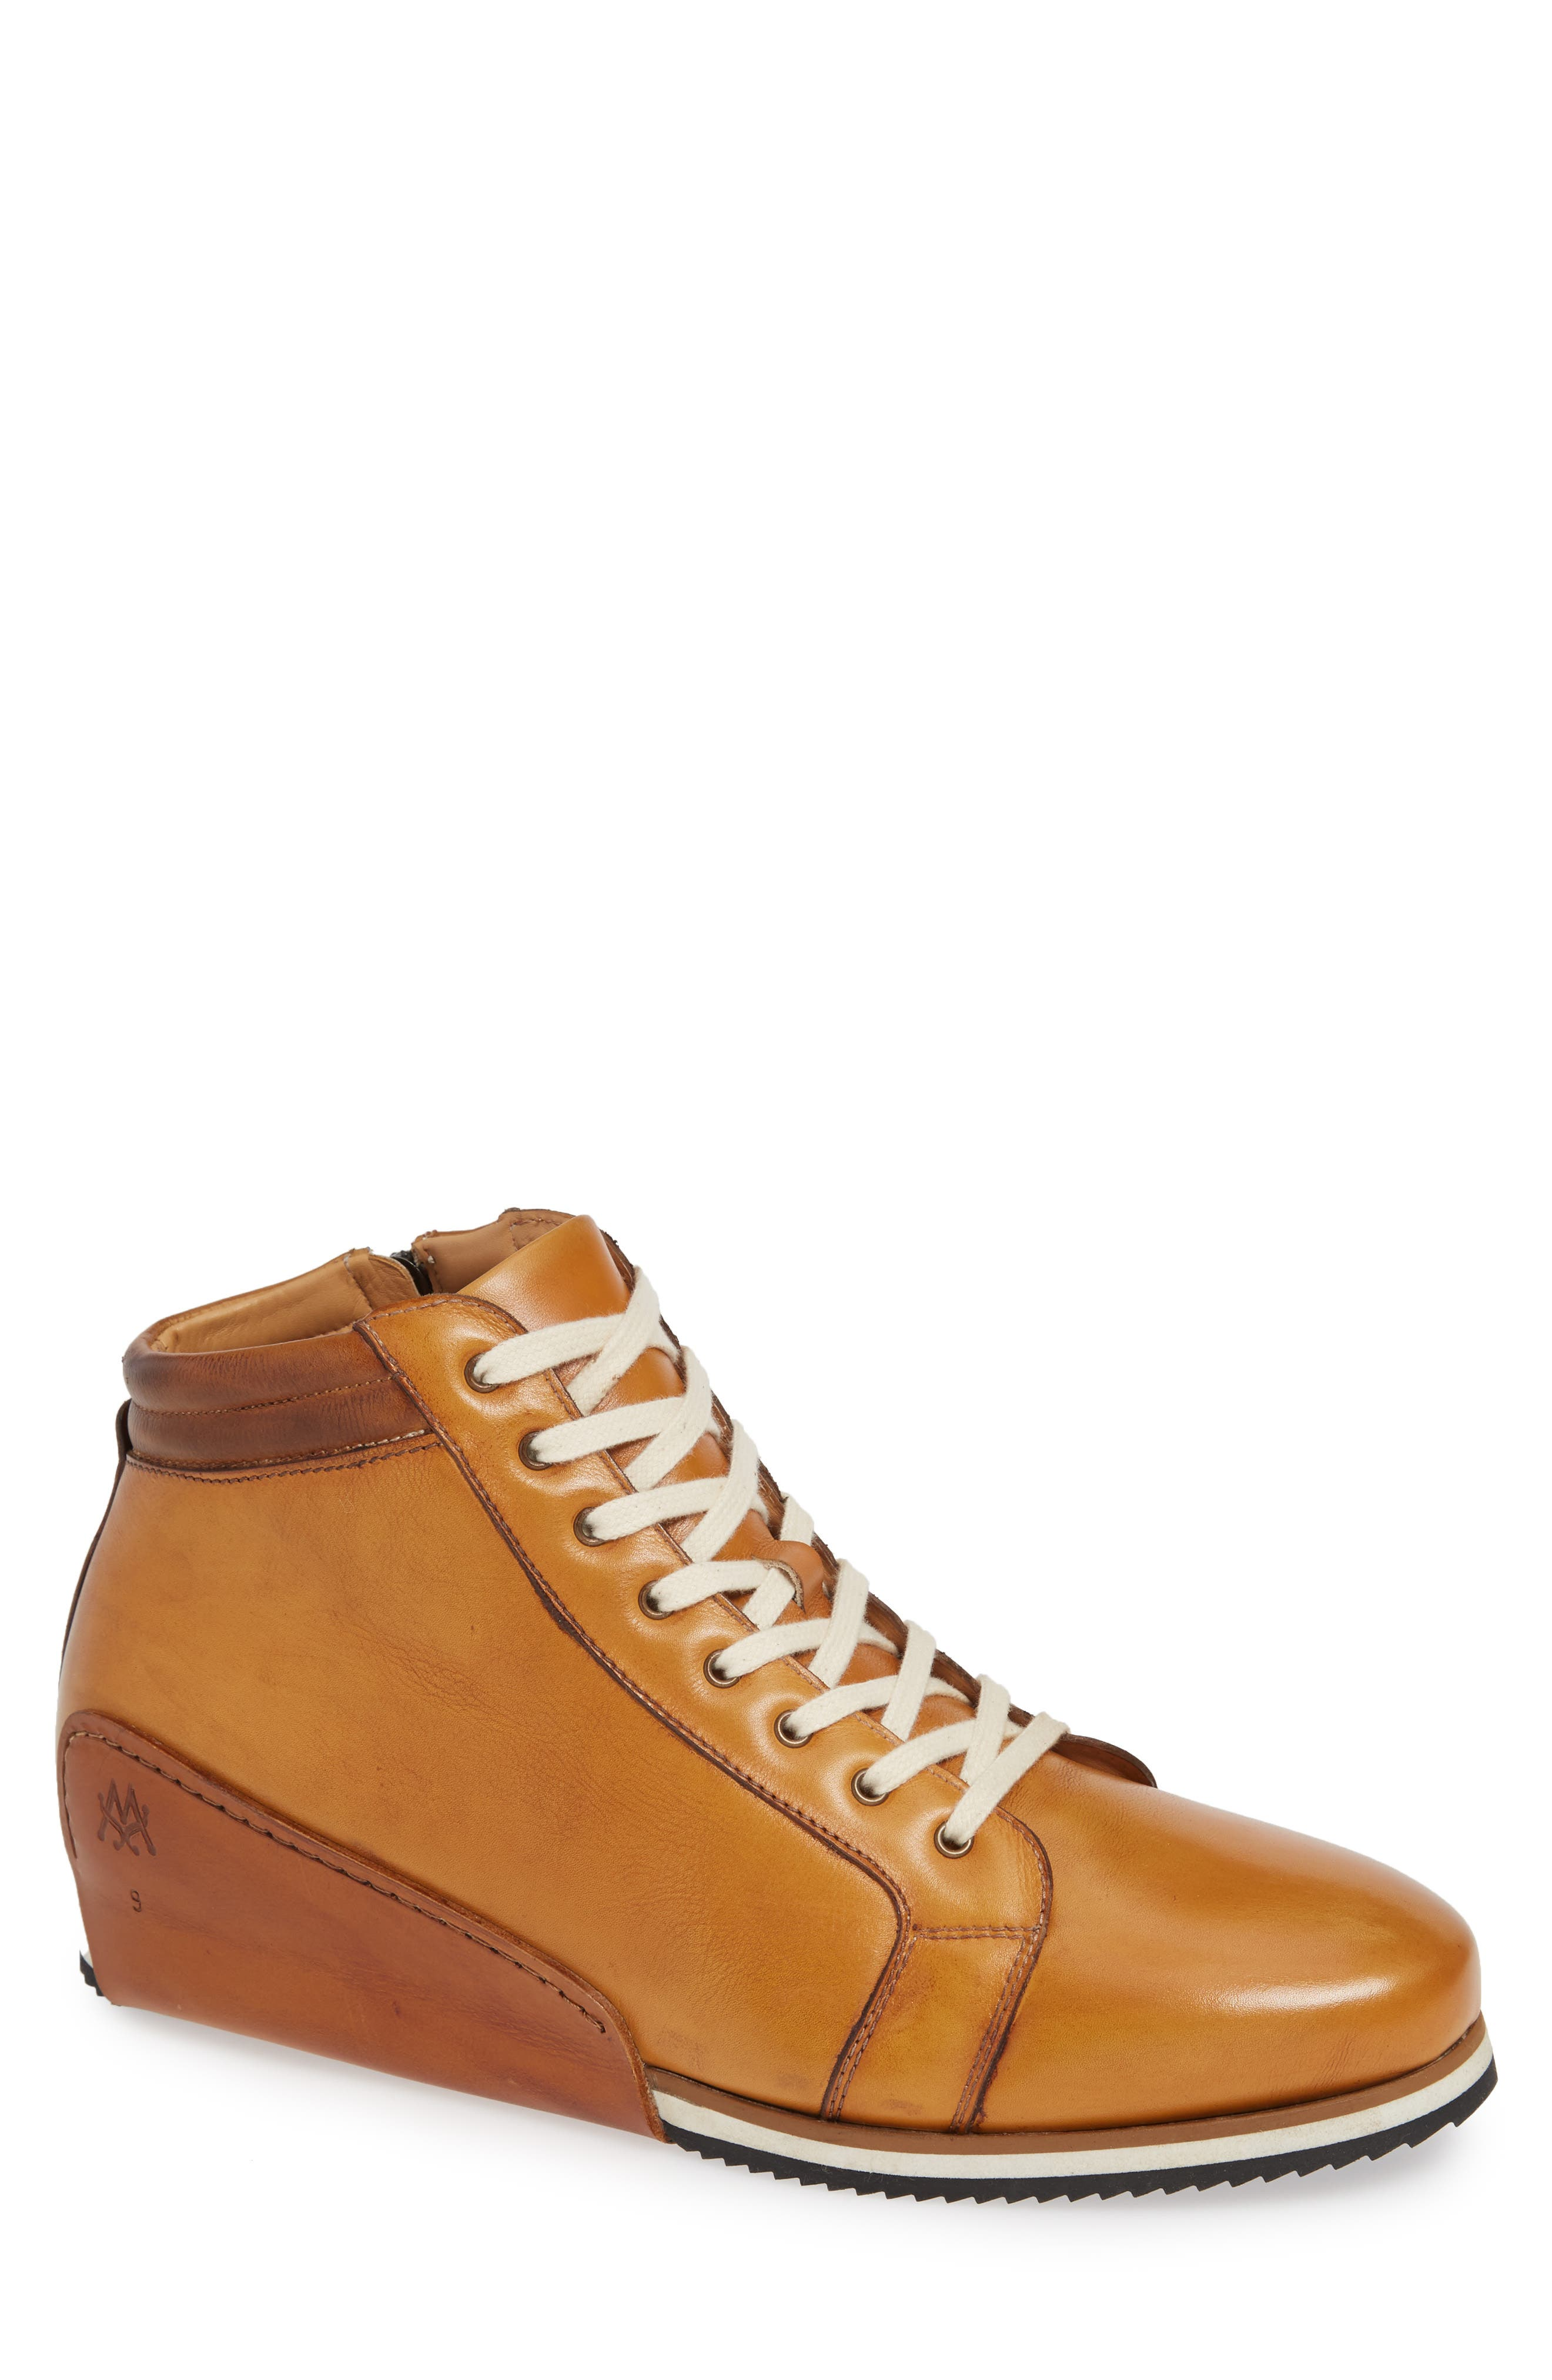 Niro Sneaker in Tan Leather